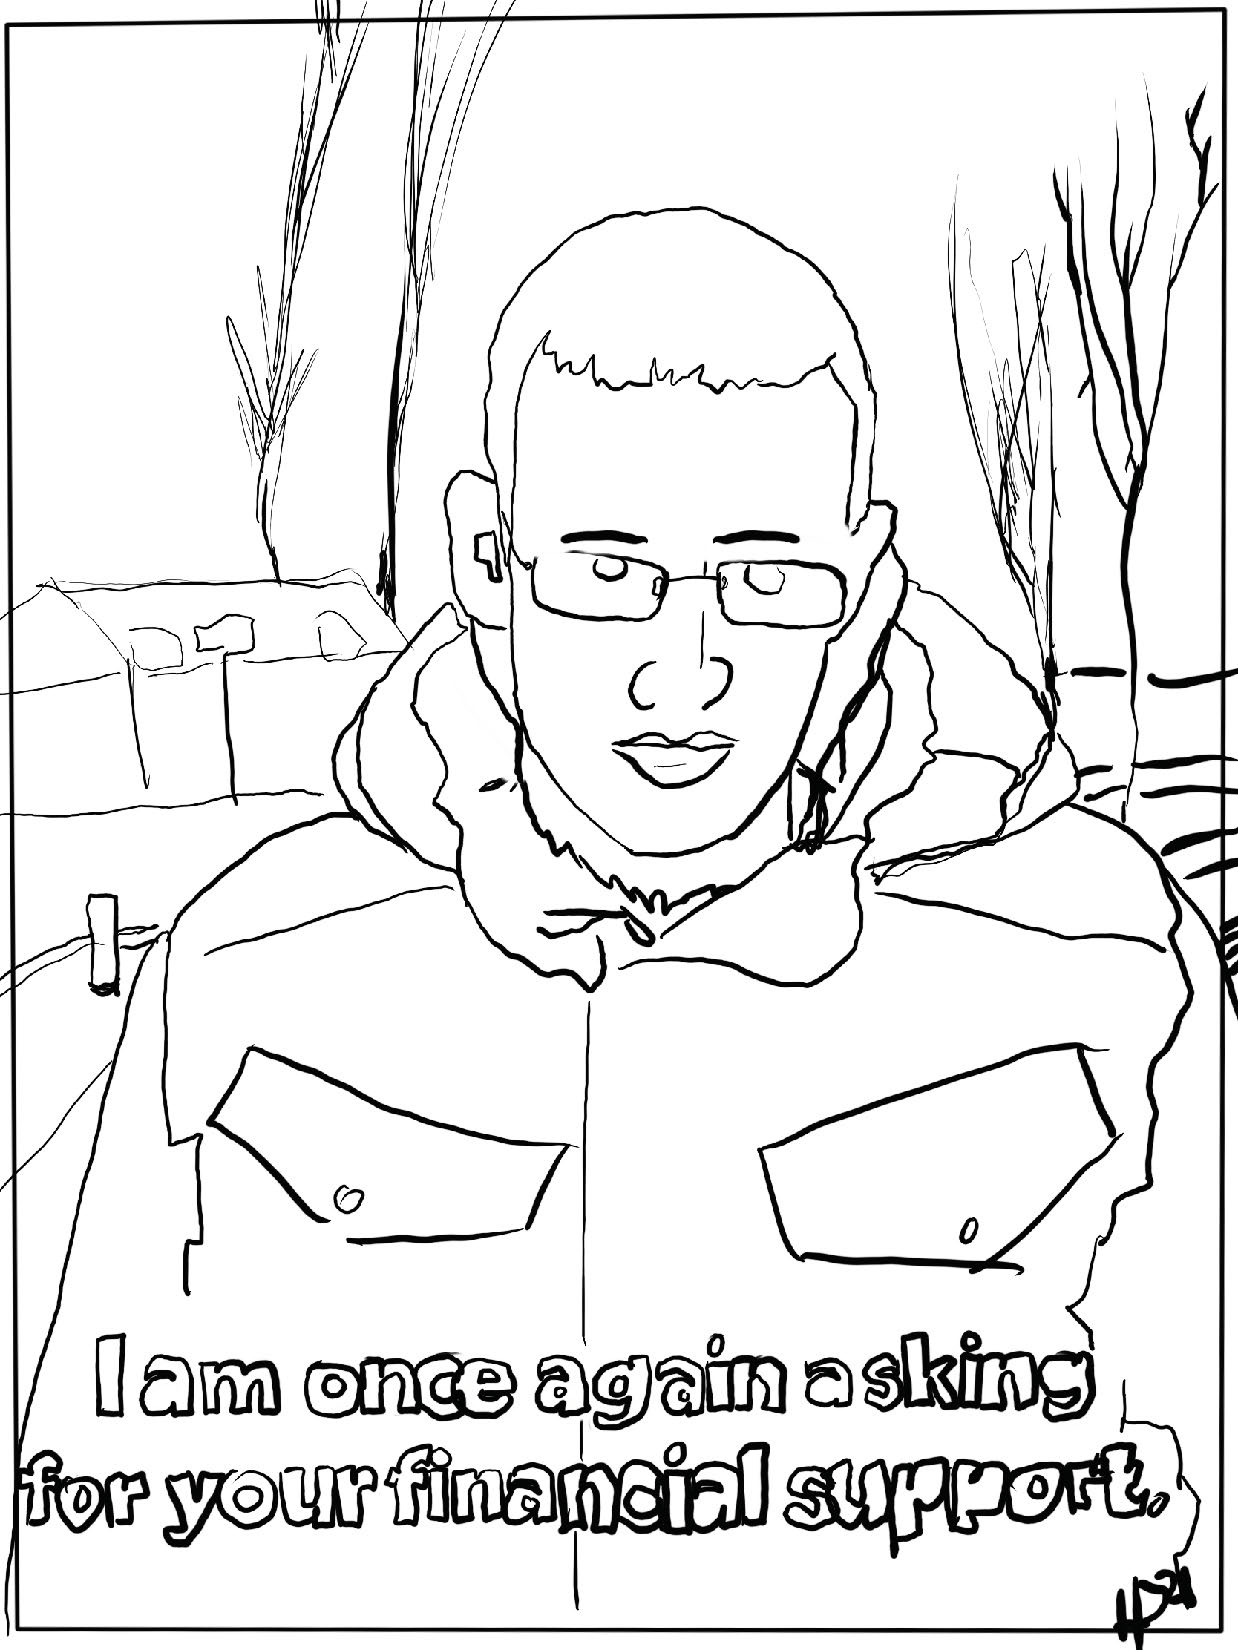 **** LIMITED EDITION **** From Meme to White House Coloring Book SIGNED BY SPIKE